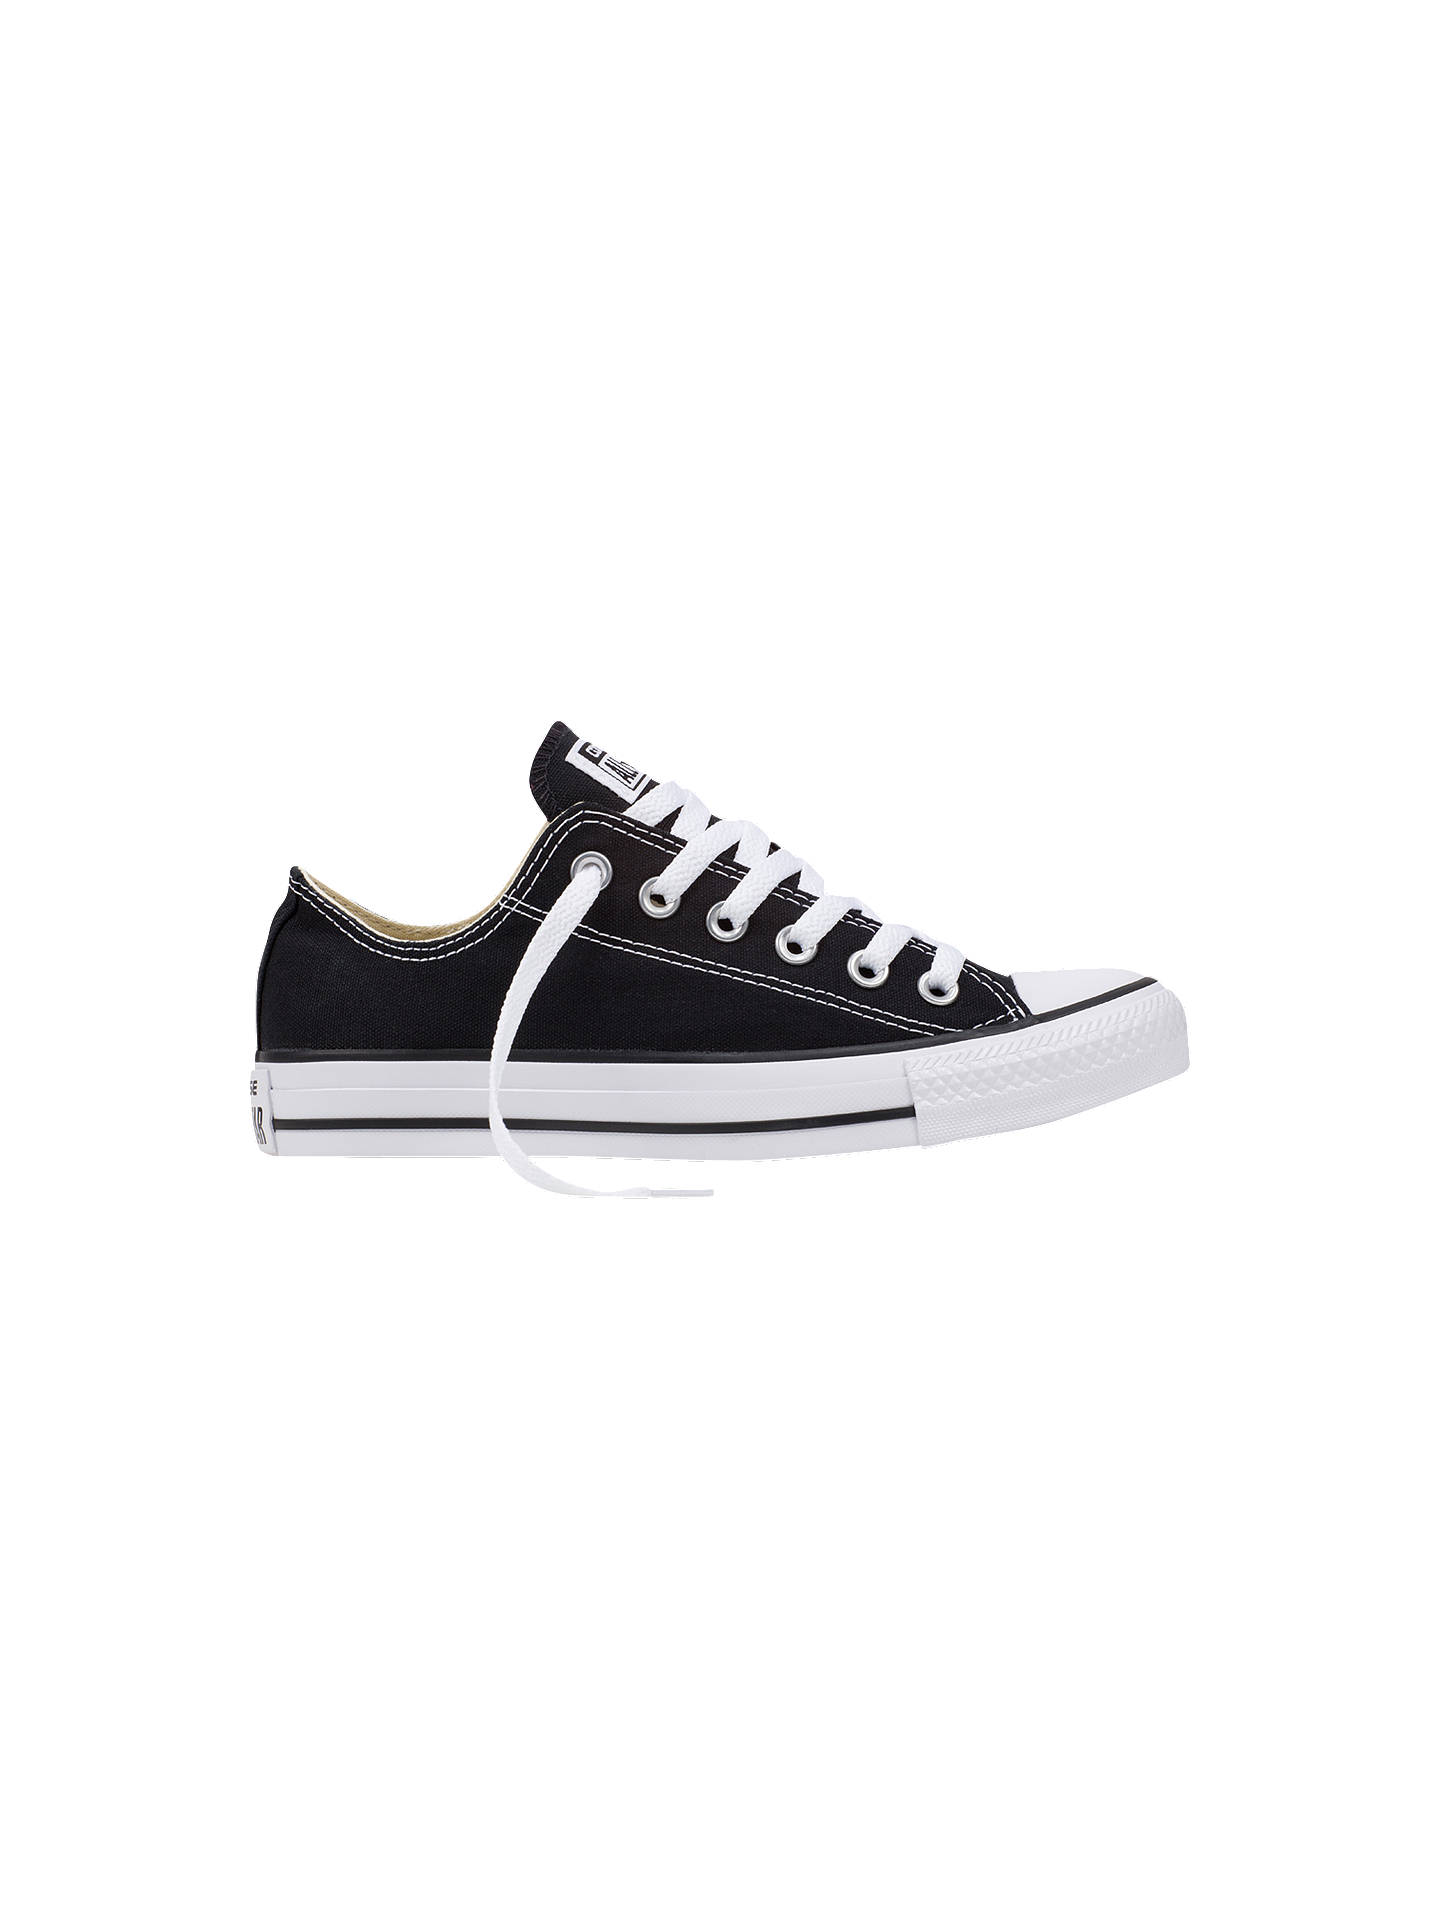 7d004160c182 Converse Chuck Taylor All Star Ox Trainers at John Lewis   Partners